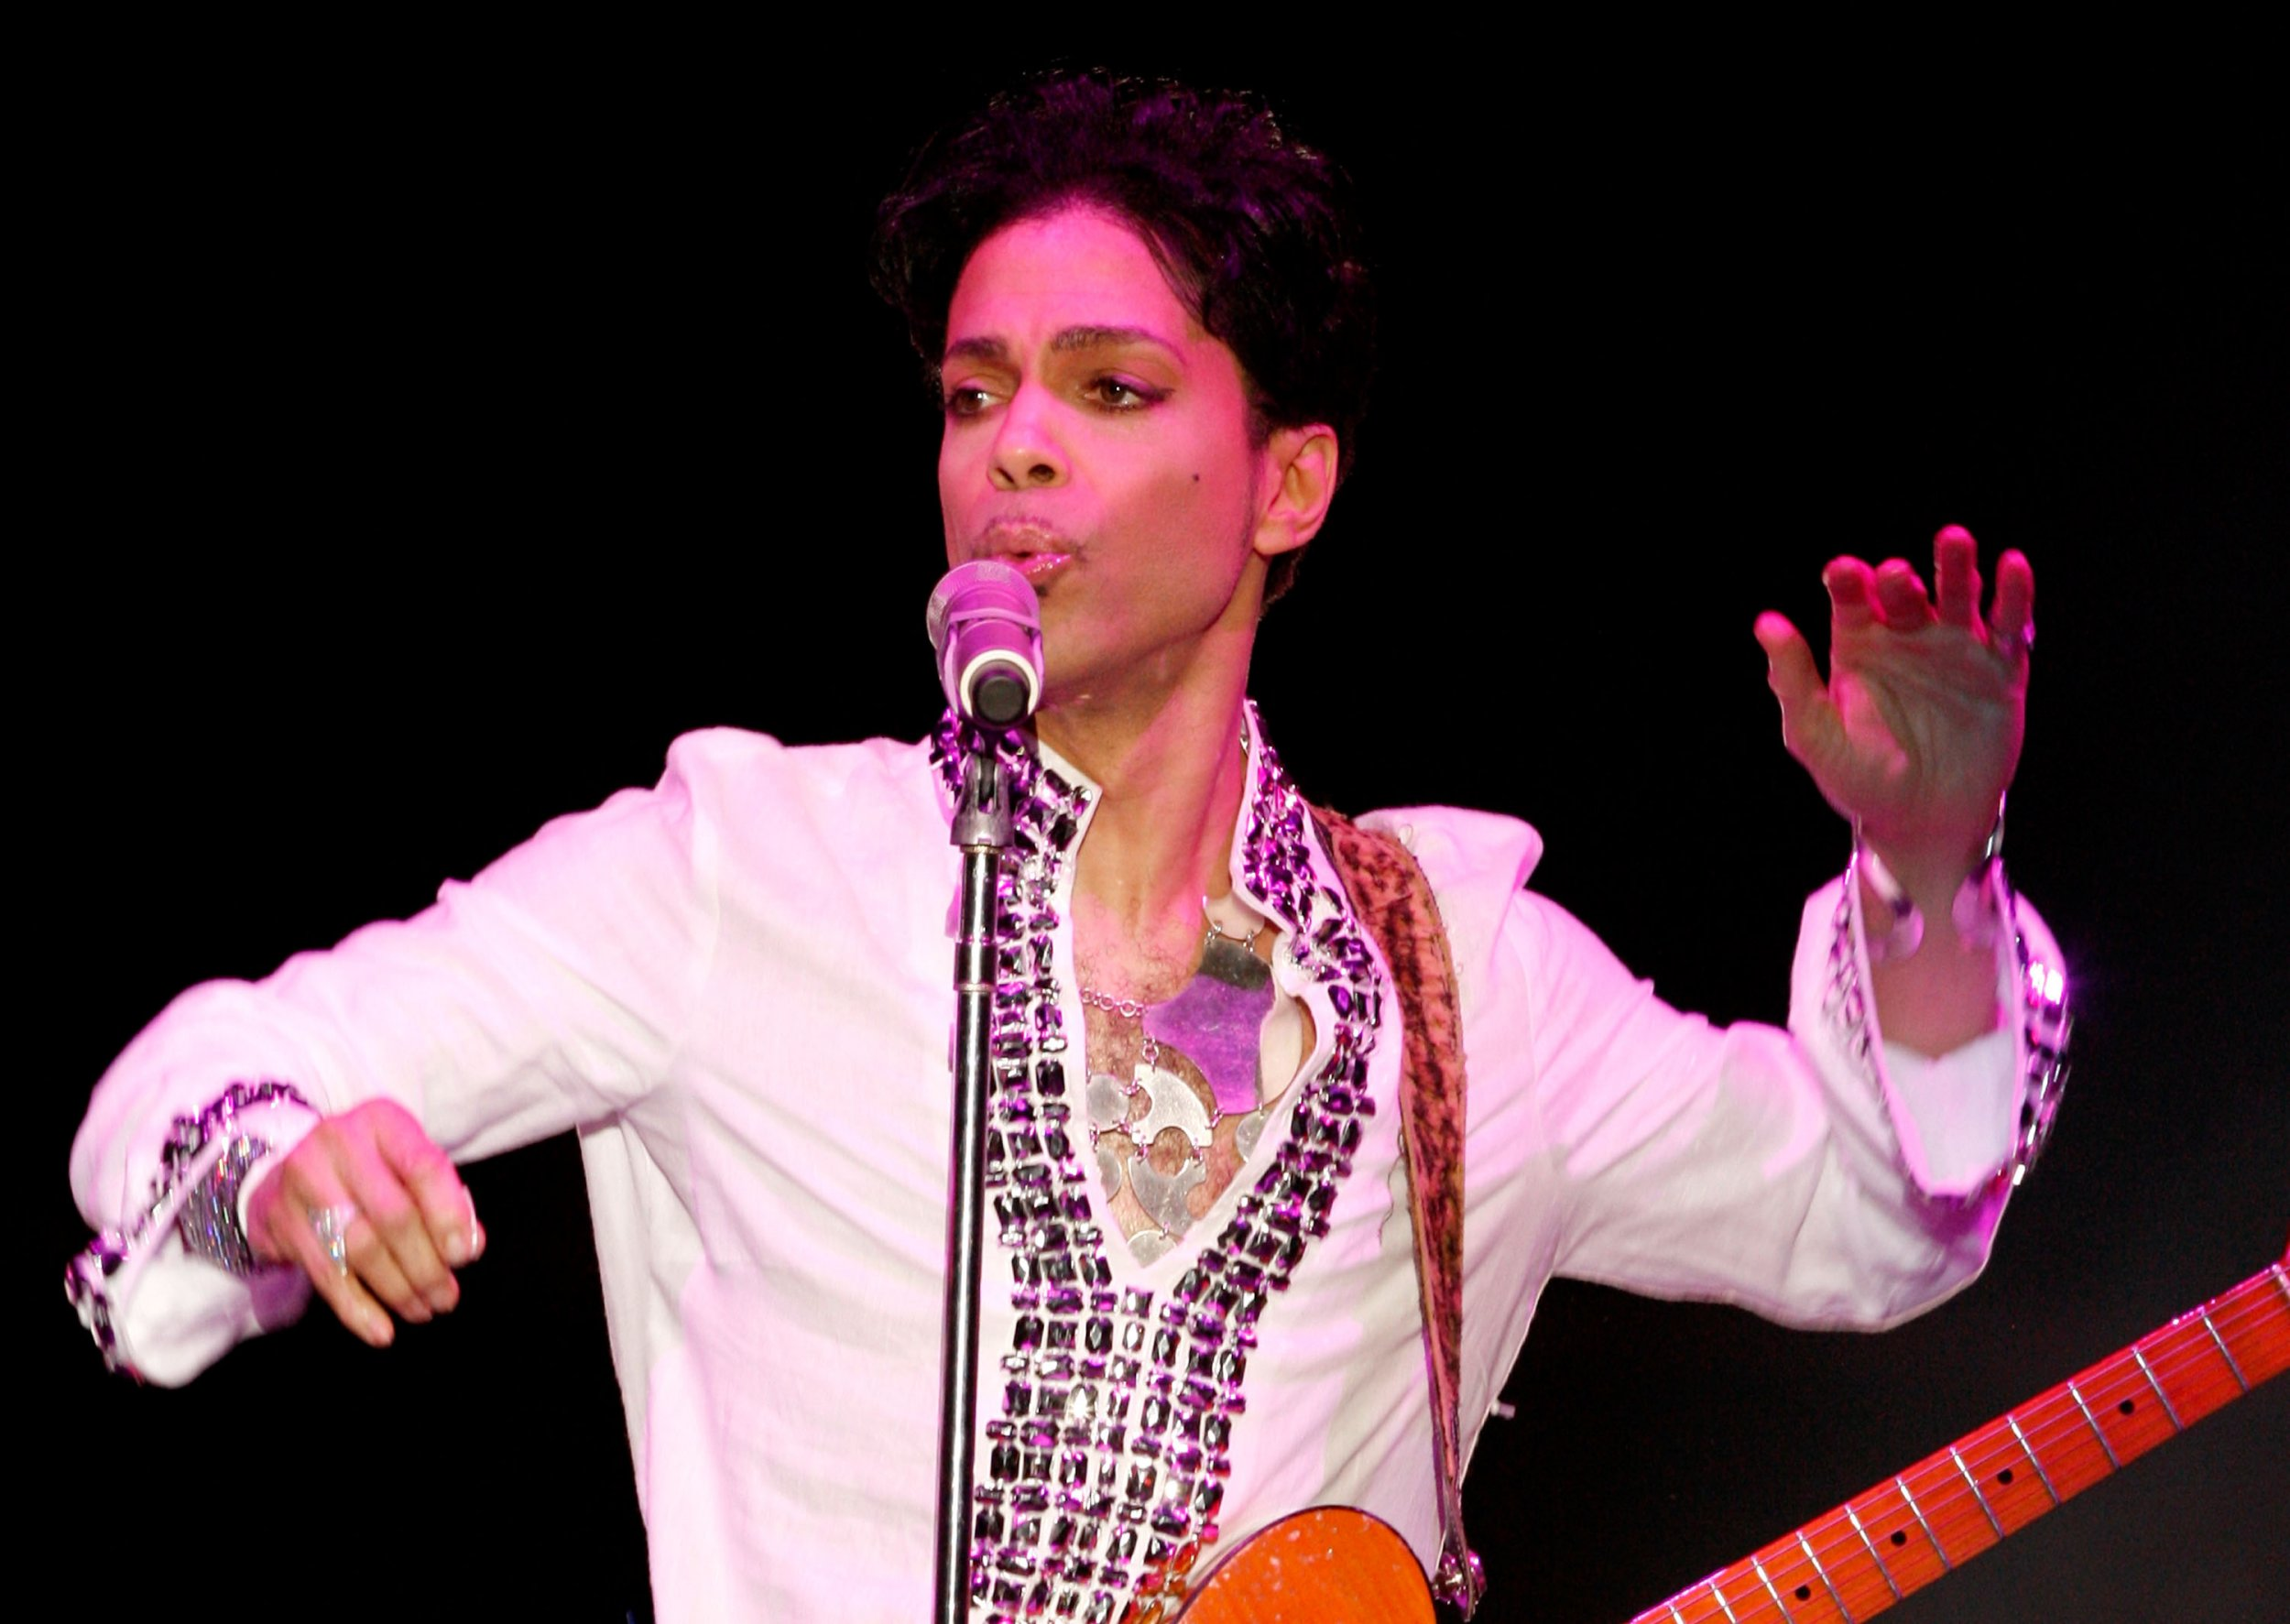 Prince in 2008